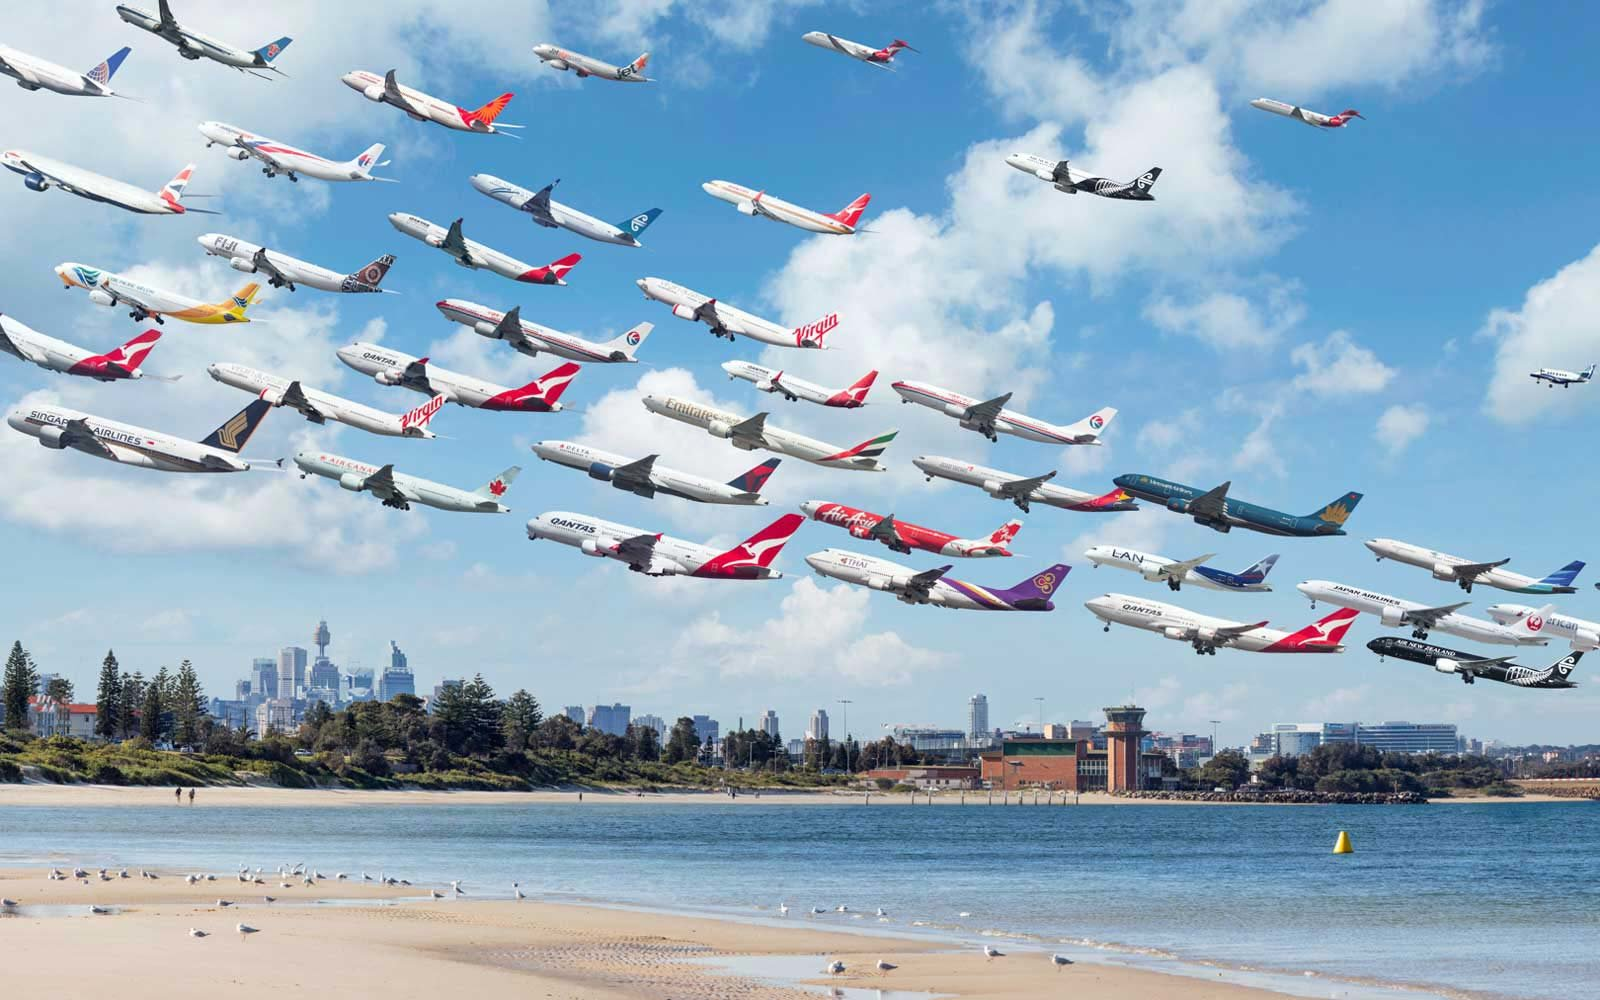 mike michael kelley airportrait photography airplane flight